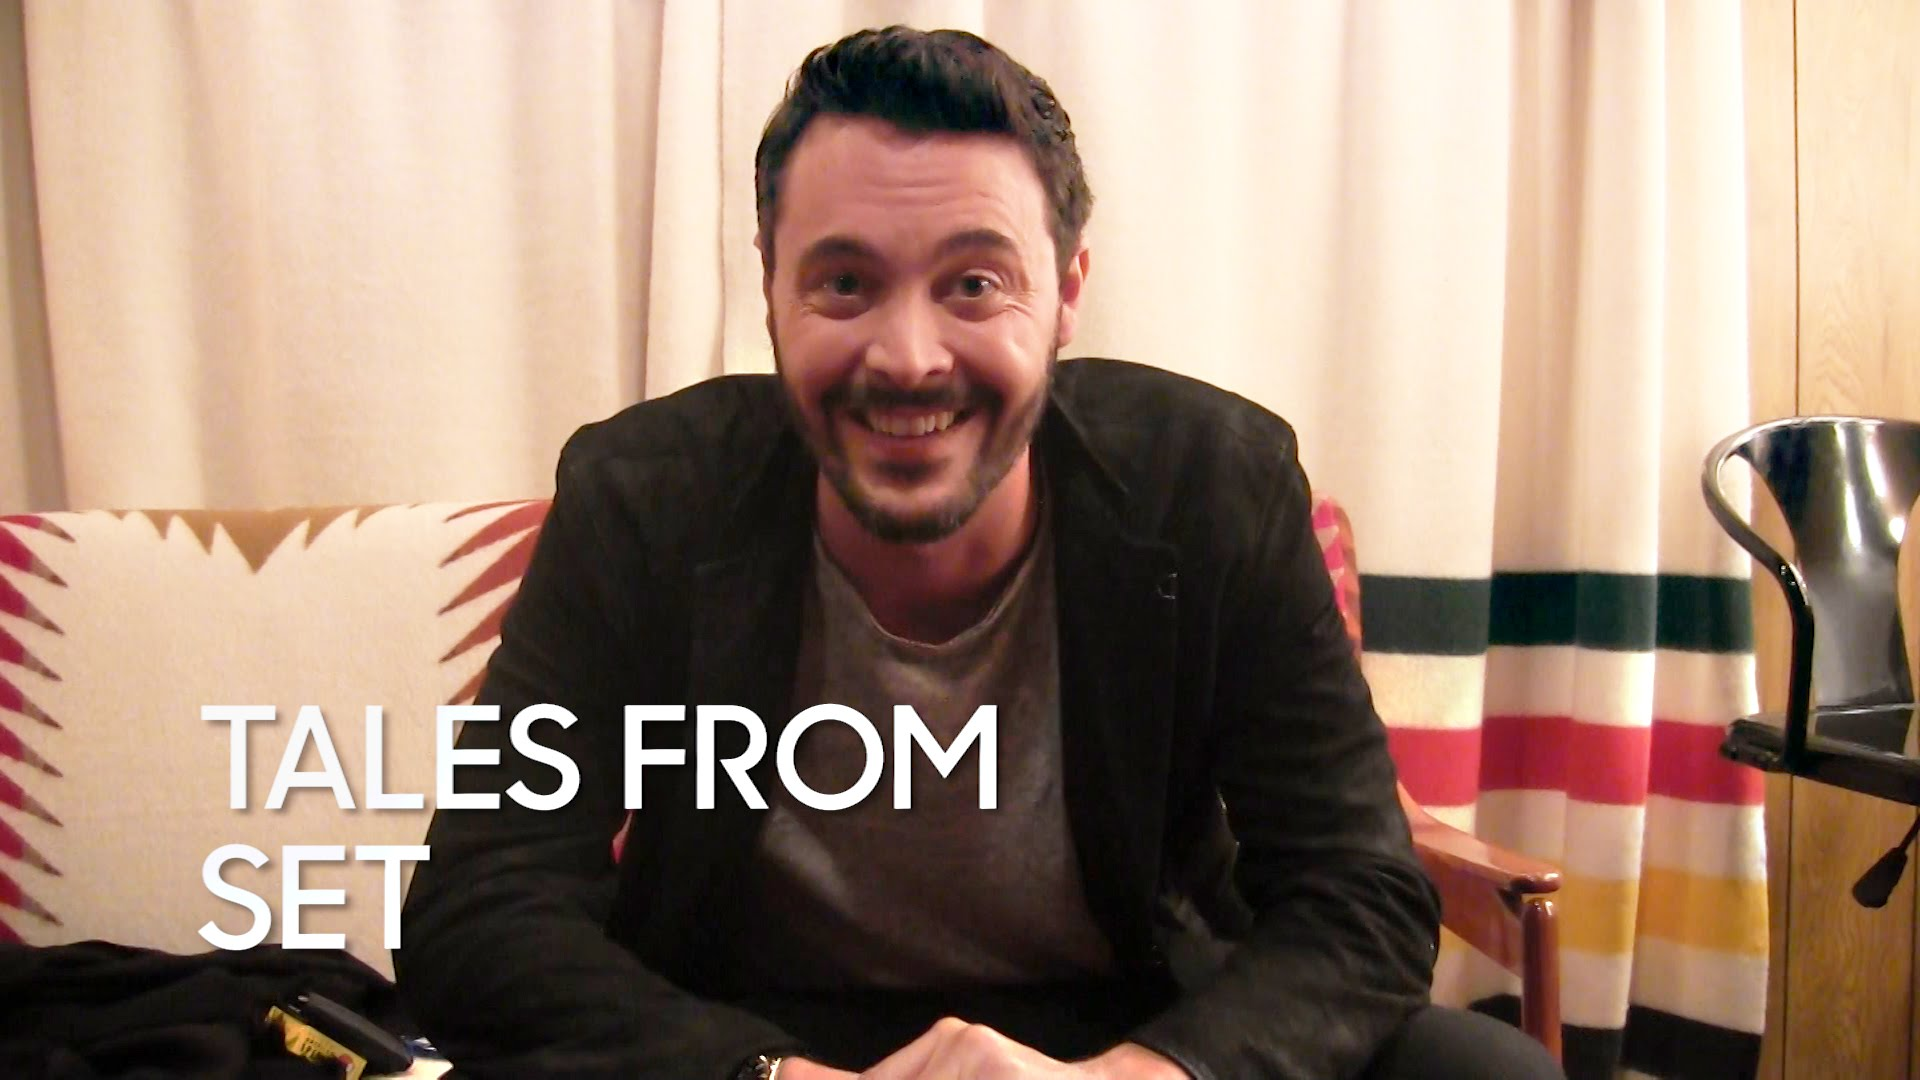 Watch Late Night with Jimmy Fallon Season  - Tales from Set: Jack Huston on